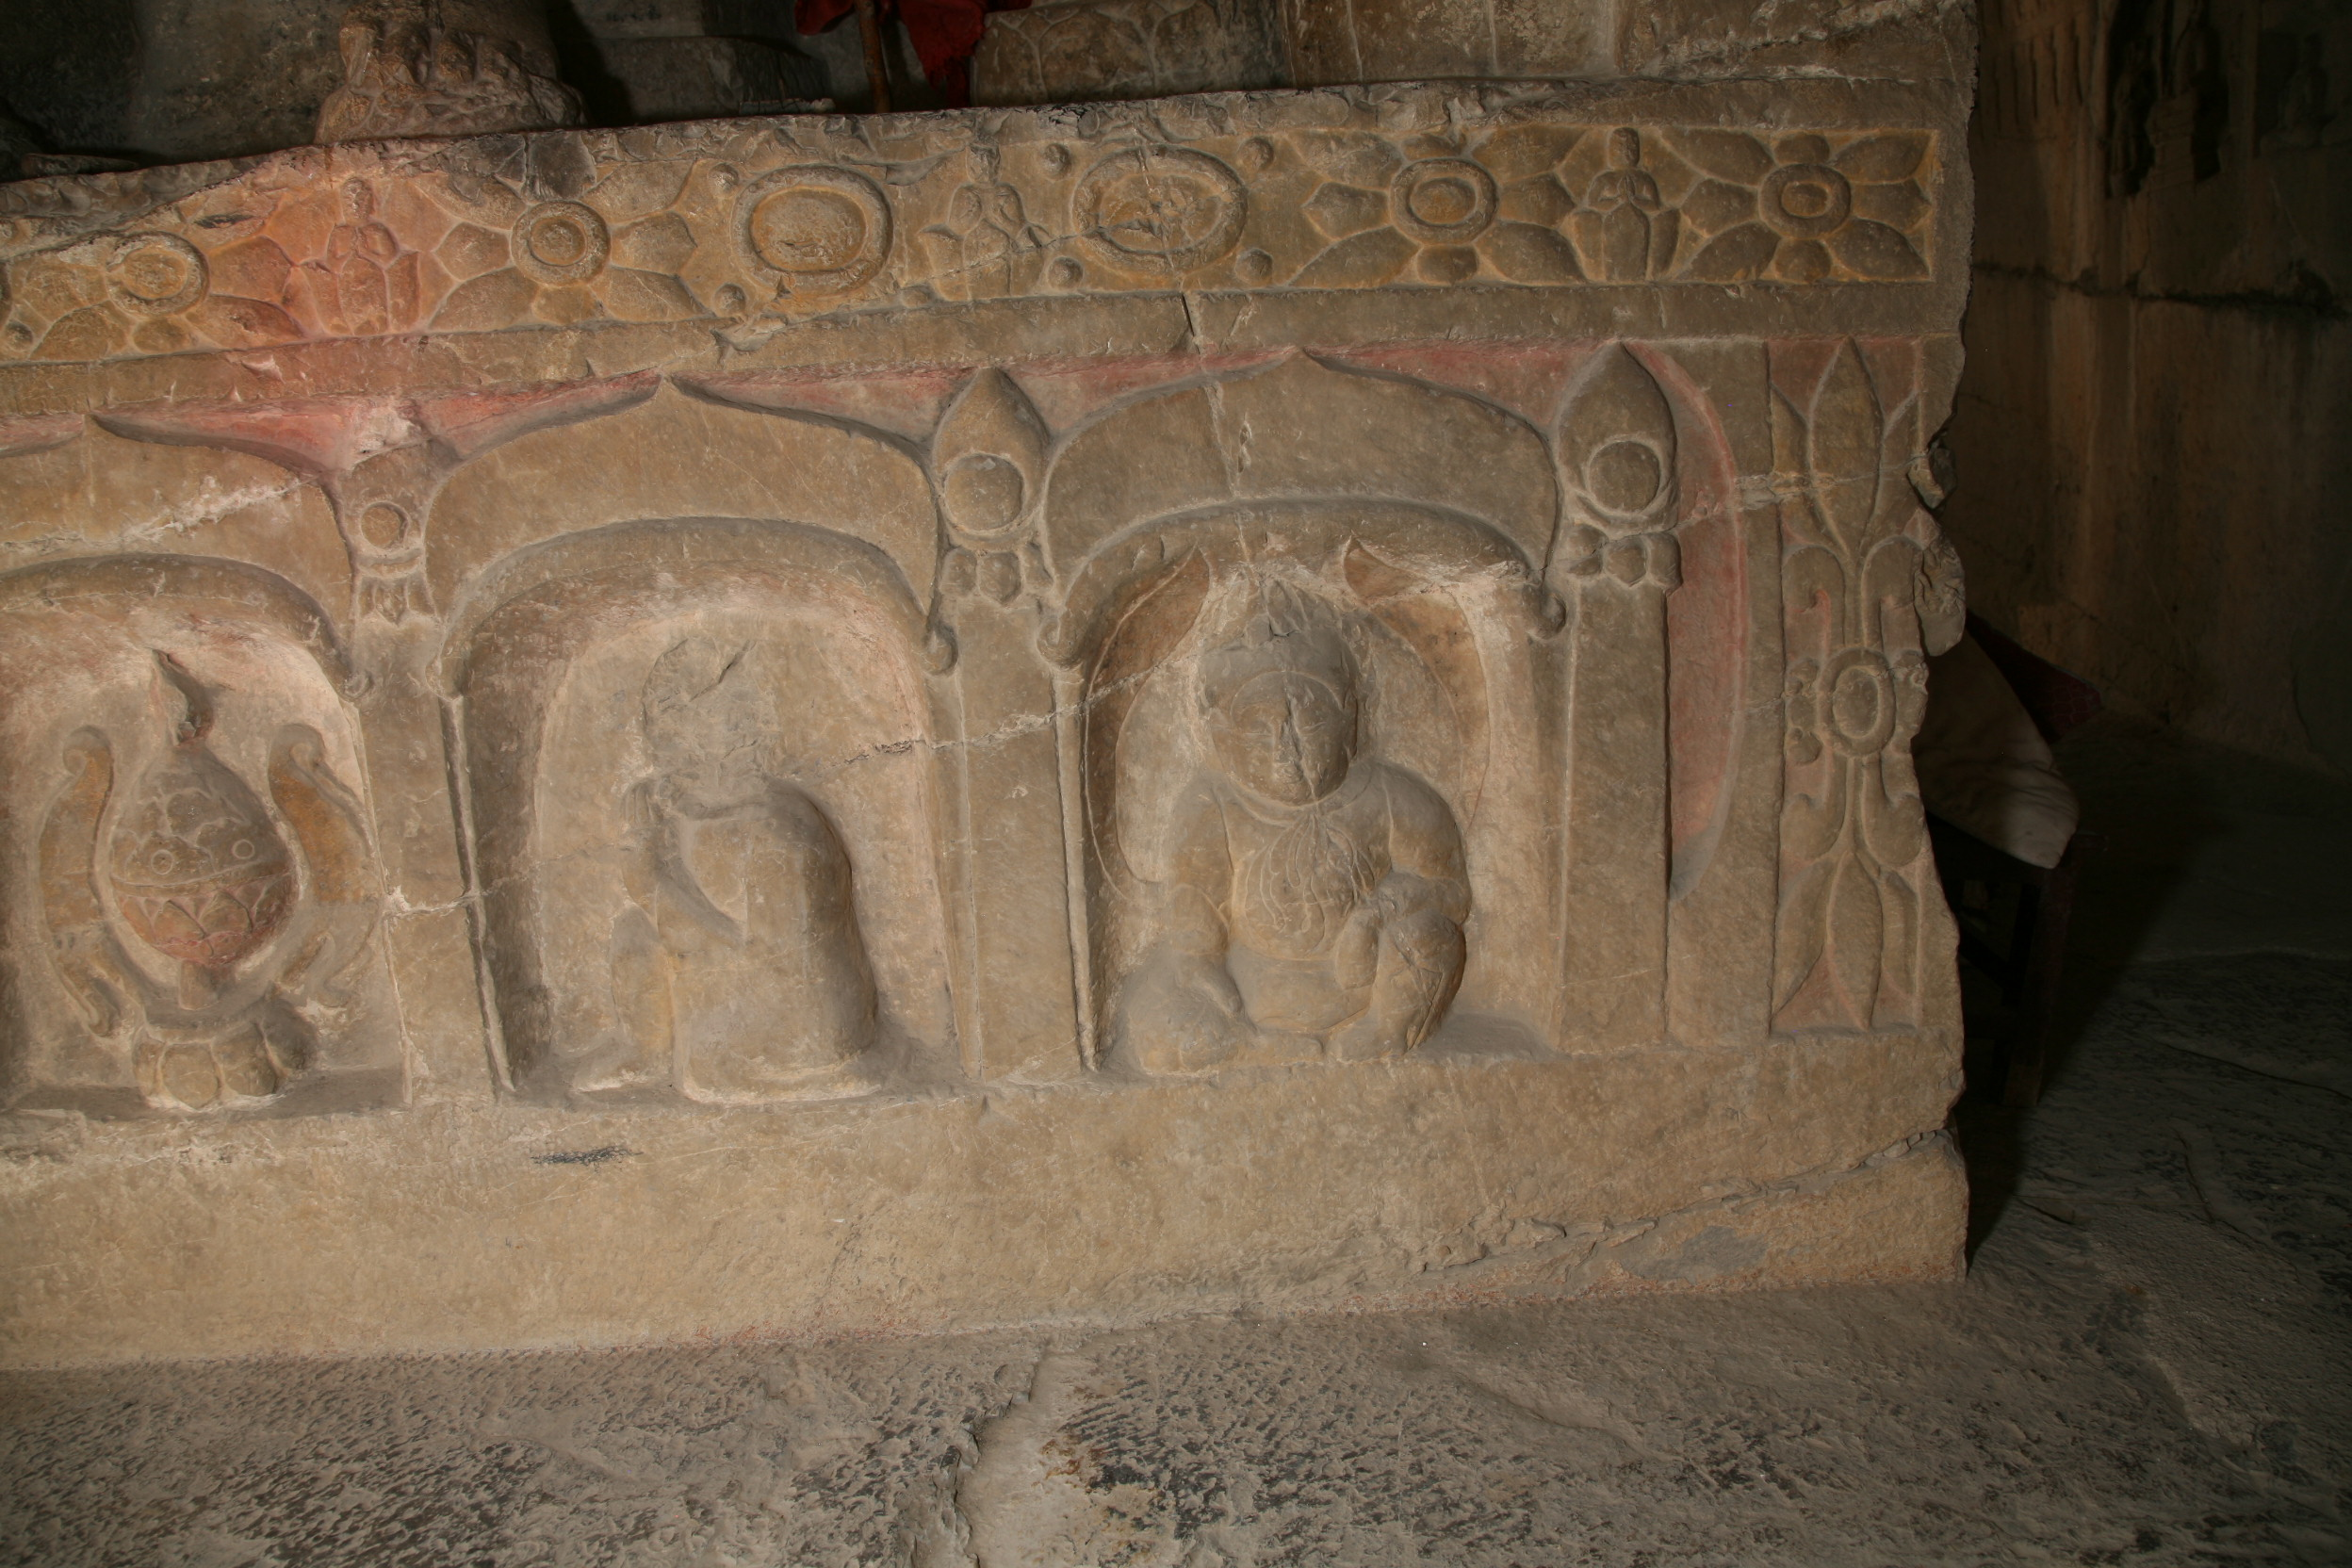 Shuiyusi West Cave, Spirit King, kneeling monk, and incense burner